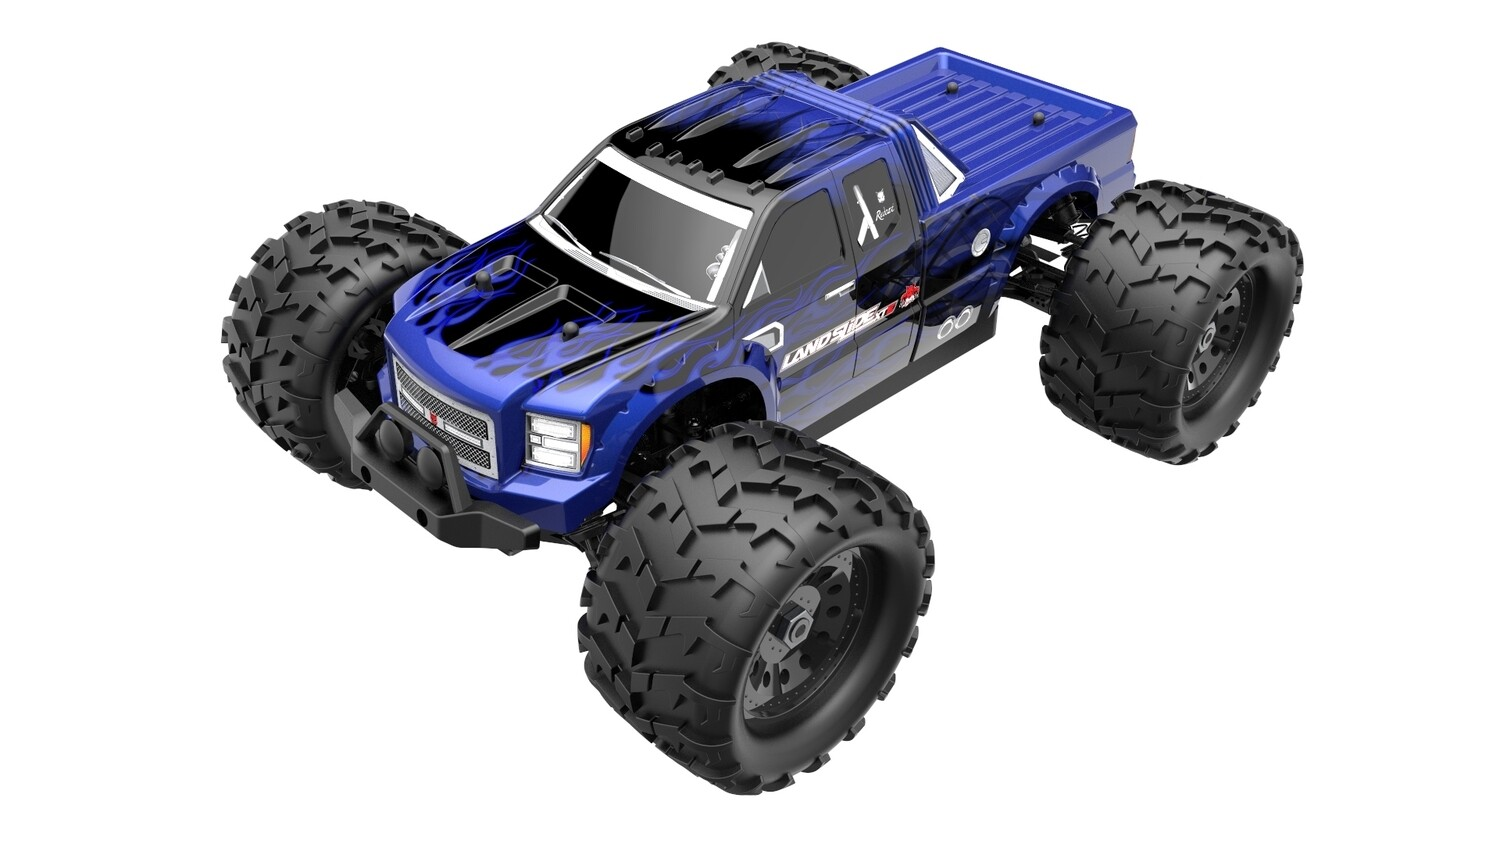 Redcat Racing Landslide XTE 1/8 Scale Brushless Electric Monster Truck (Batteries & Charger NOT Included)